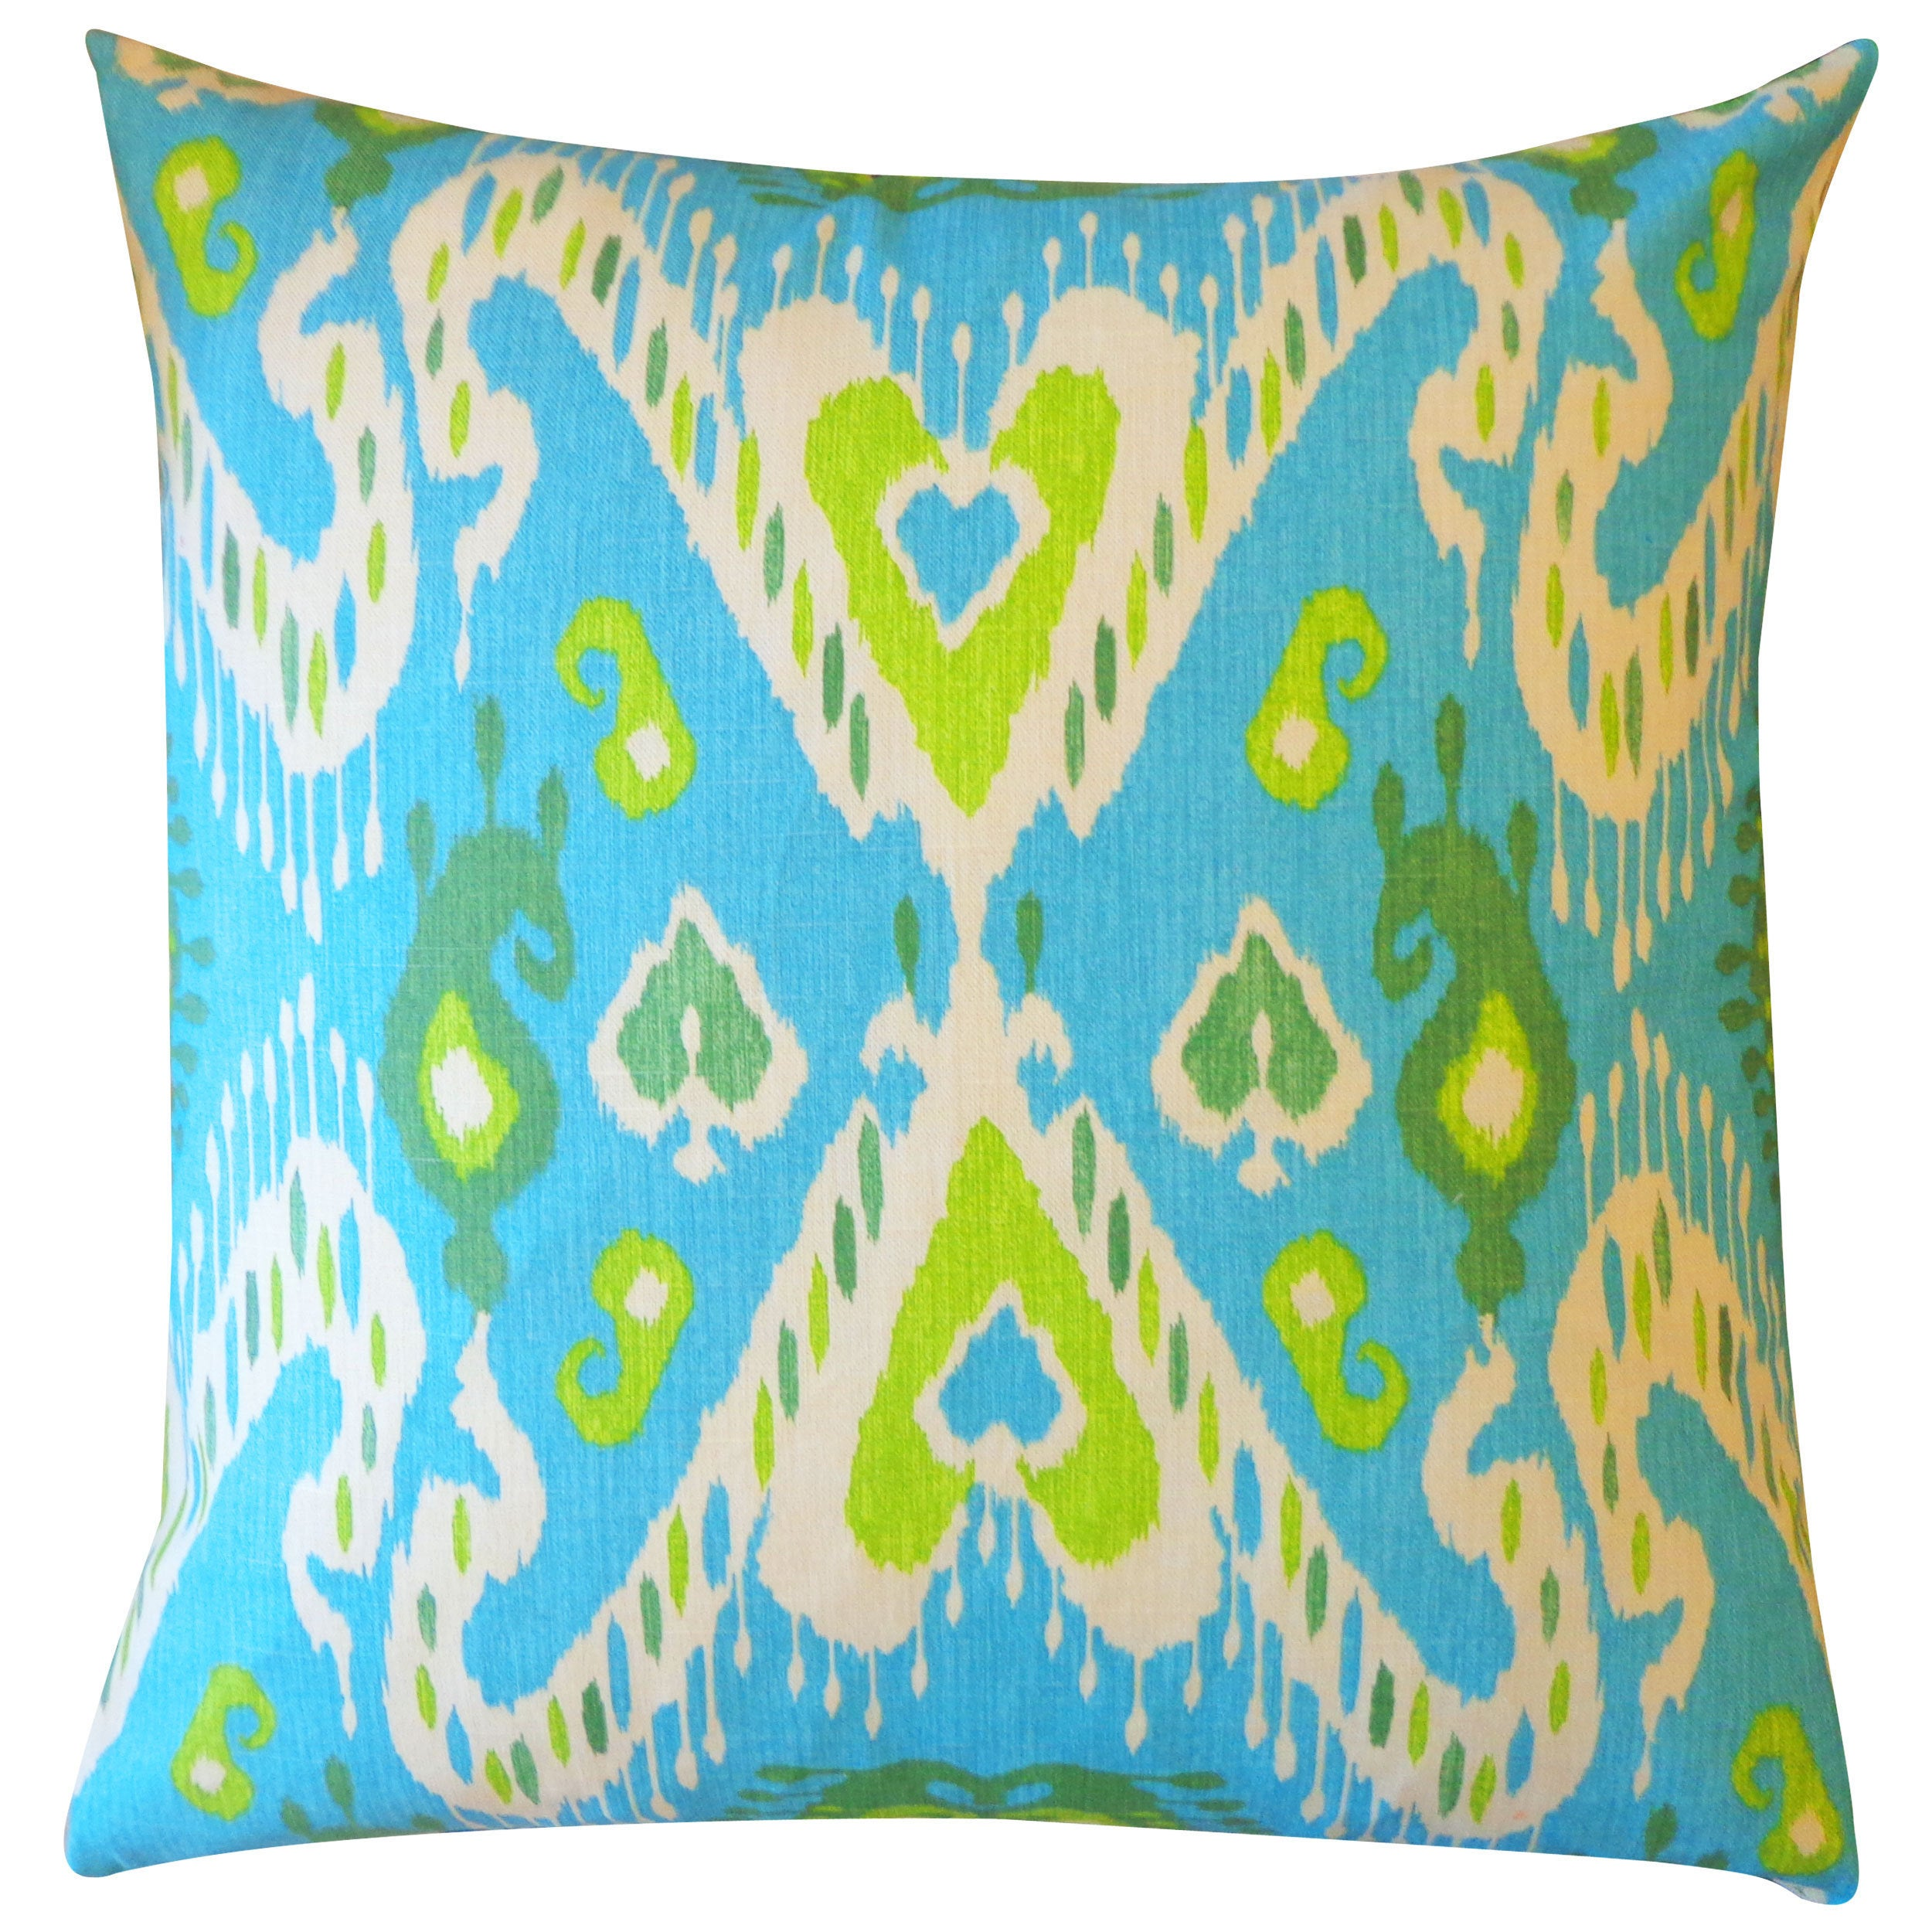 Jiti 24 x 24-inch Coriander Throw Pillow (24x24 Coriander blue)